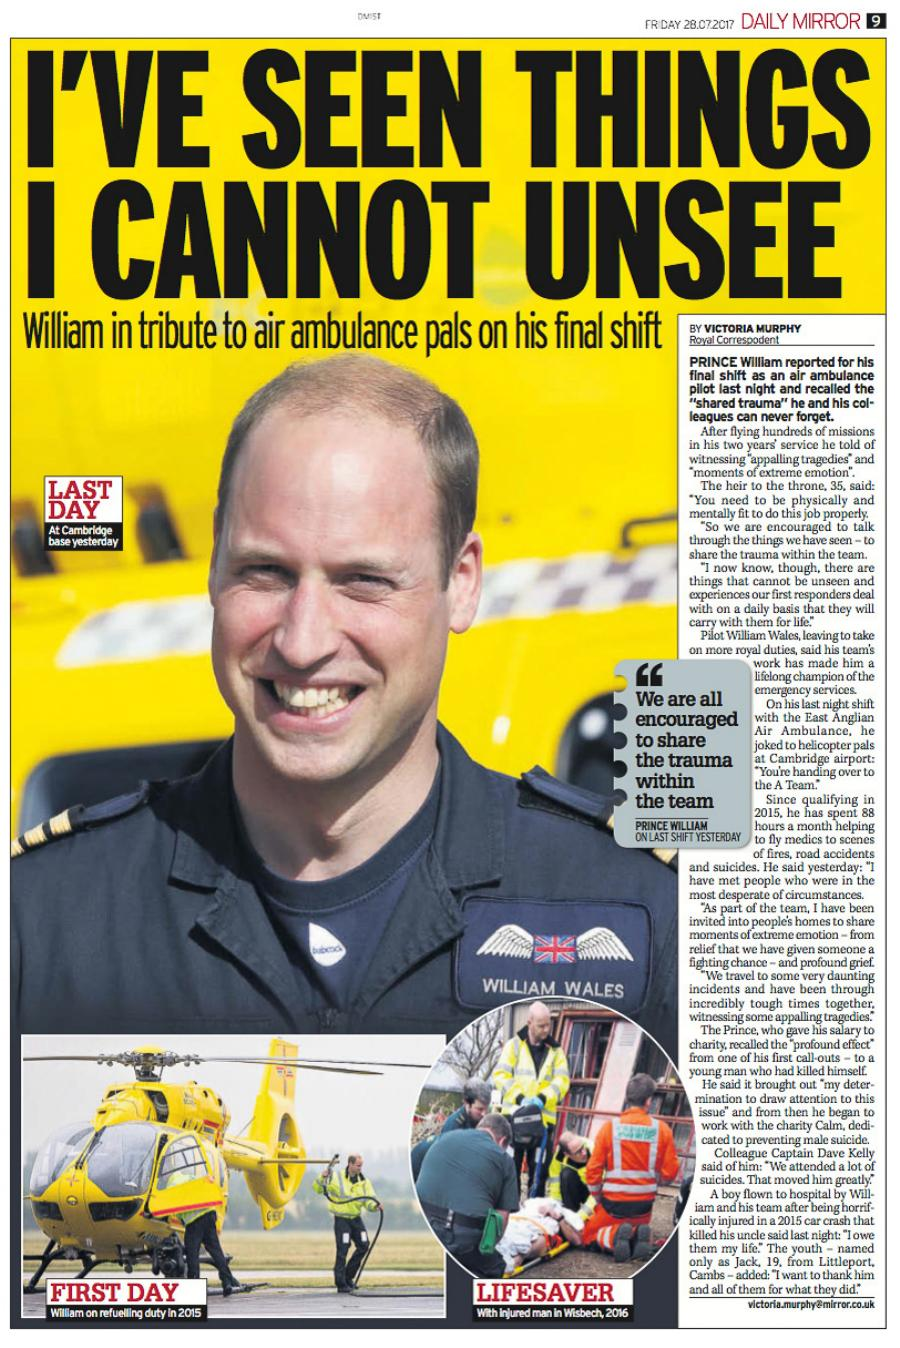 Prince William's Last Day At Air Ambulance